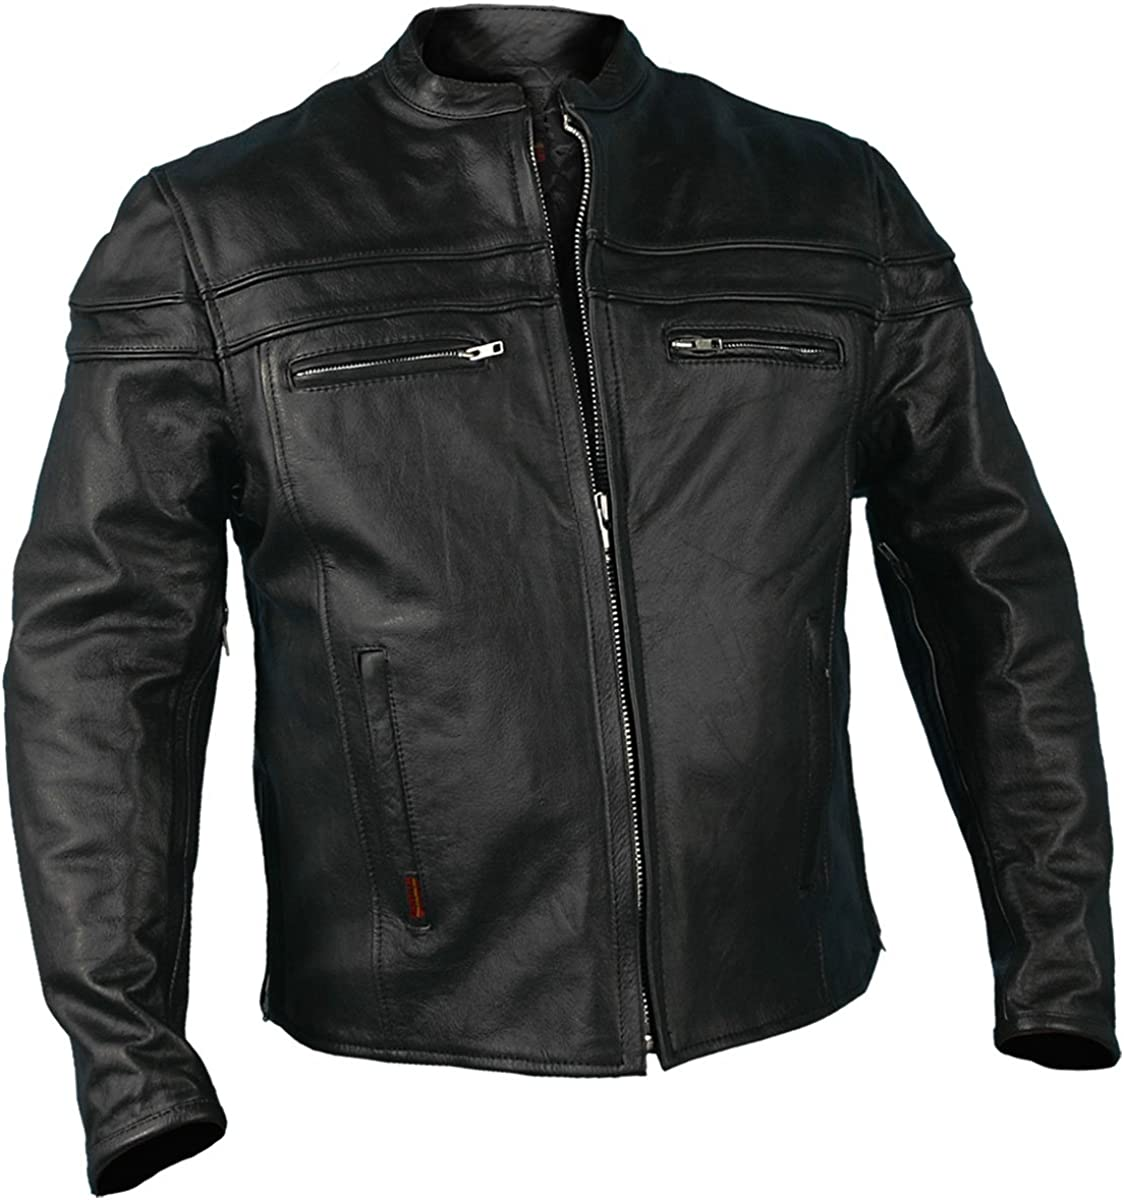 Hot Leathers Black Leather Men's Jacket with Double Piping